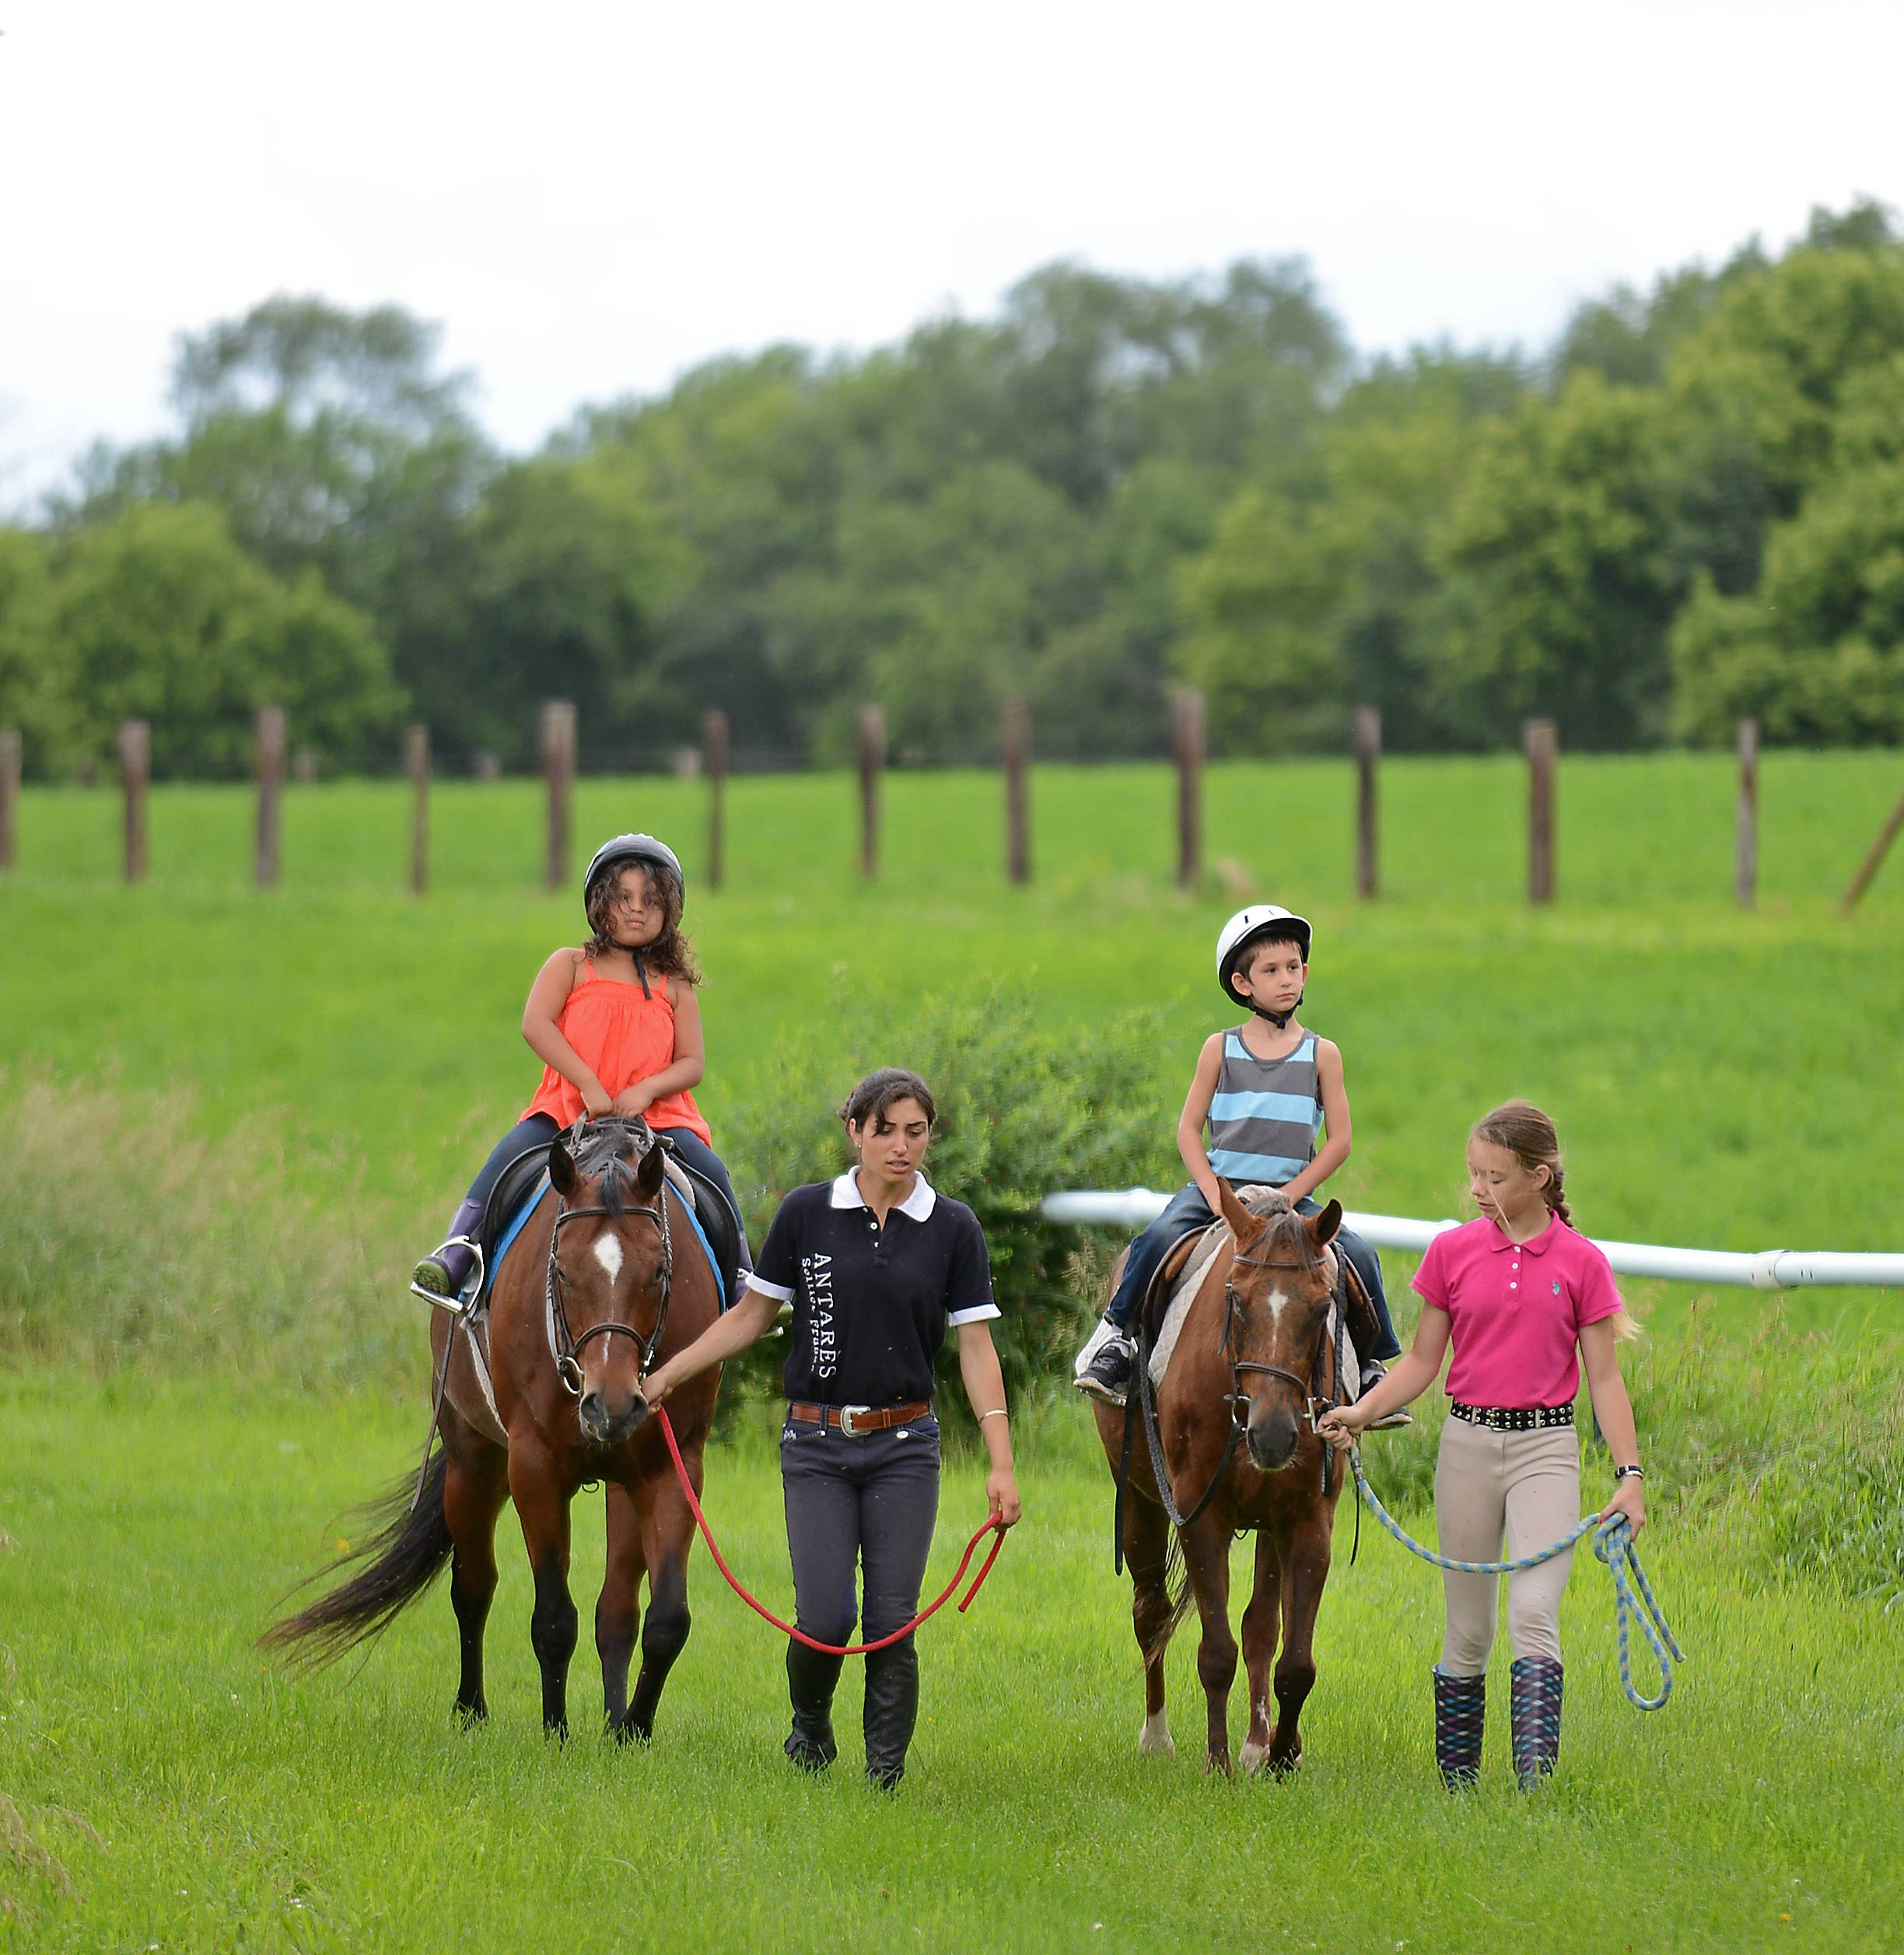 Tower Hill Stables in Hampshire offers guided trail rides that meander through fields, woods and scenic rolling hills just 10 minutes from I-90 and Route 47.